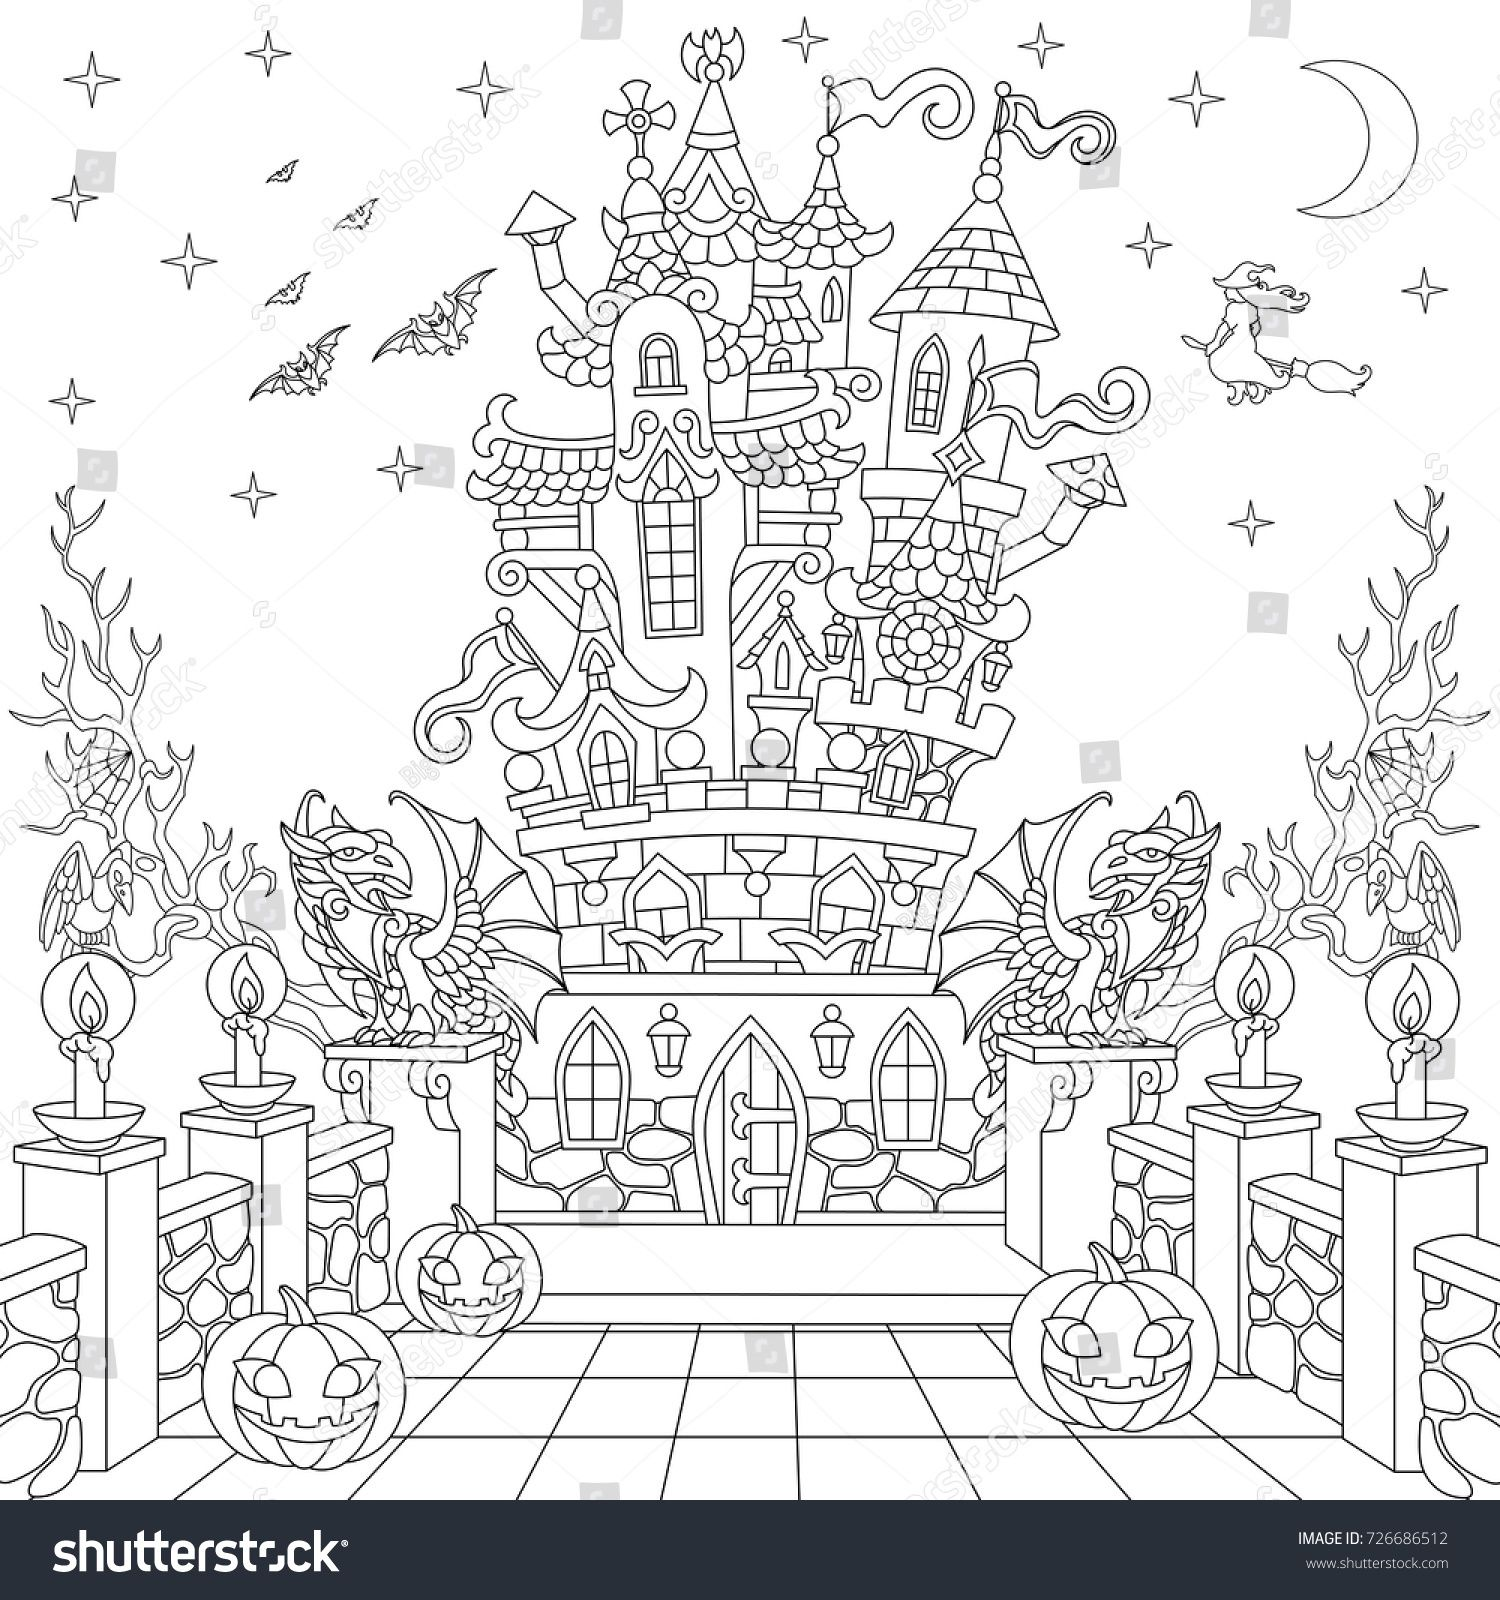 FREE Halloween Coloring Pages for Adults & Kids - Happiness is ... | 1600x1500